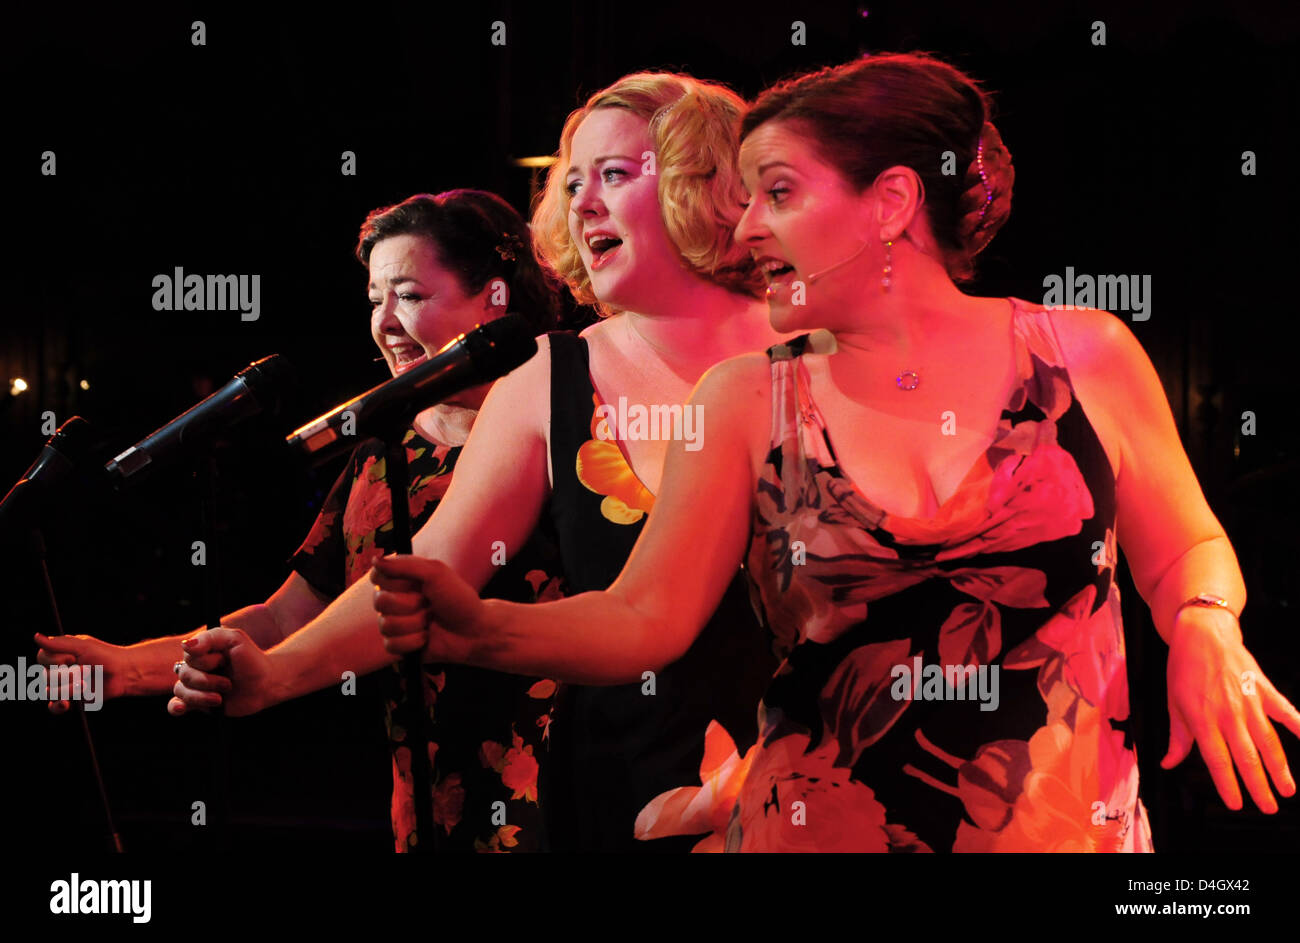 New Orleans based group 'The Pfister Sisters' (L-R) Holley Bendtsen, Debbie Davis and Yvette Voelker perform - Stock Image